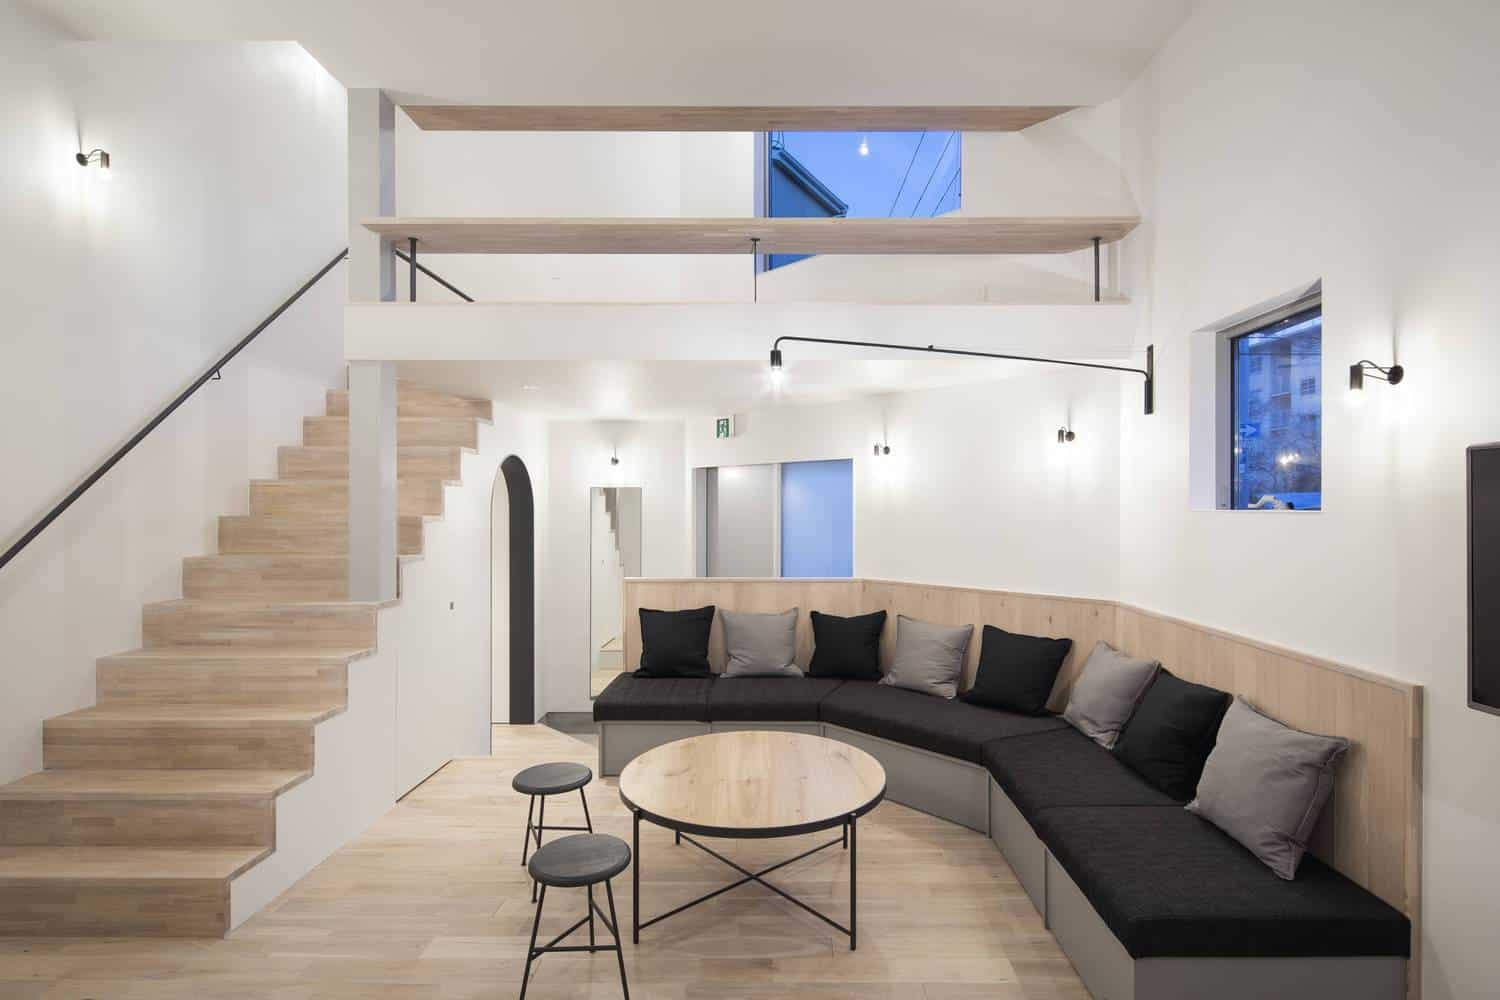 Shared House in the Middle of the City with Open Spaces